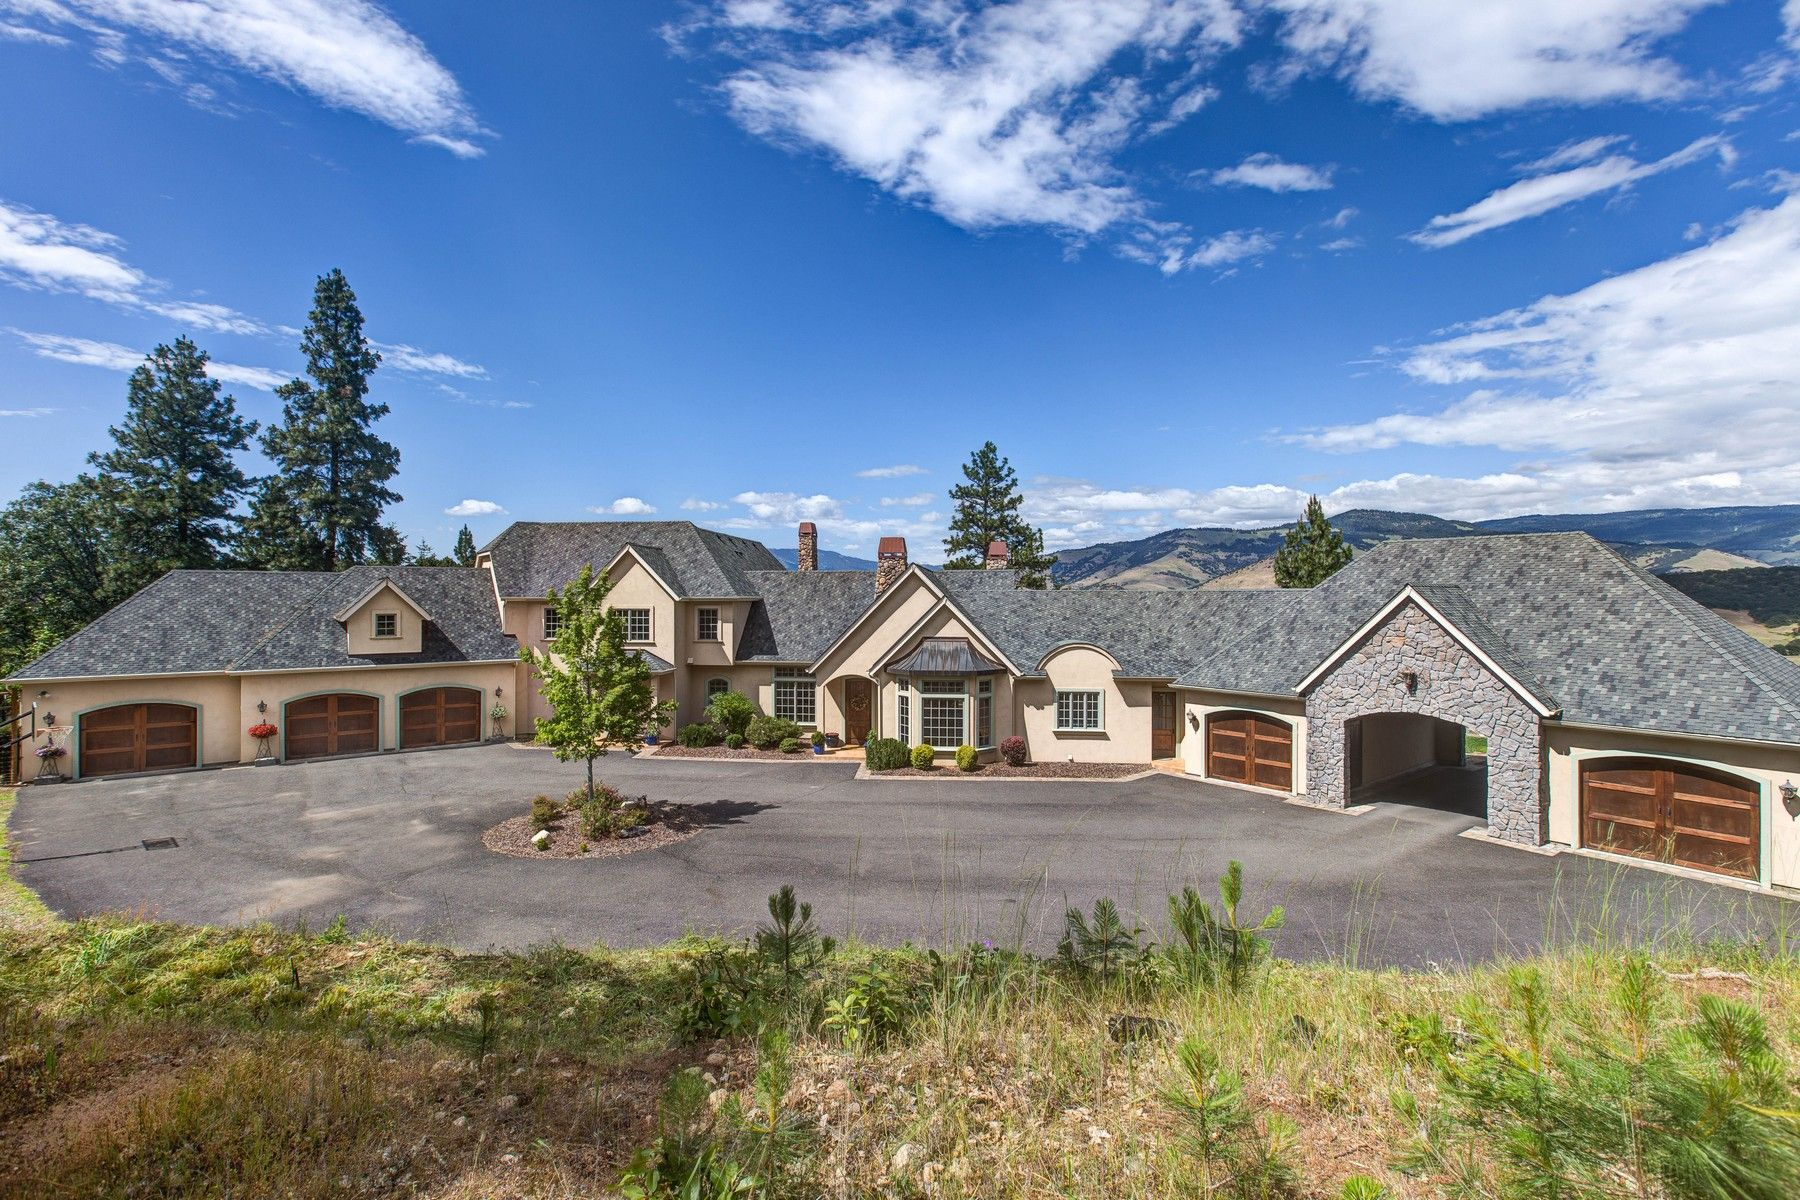 Other Residential Homes for Active at 133 Meadow Oaks Drive Ashland, OR 97520 133 Meadow Oaks Drive Ashland, Oregon 97520 United States